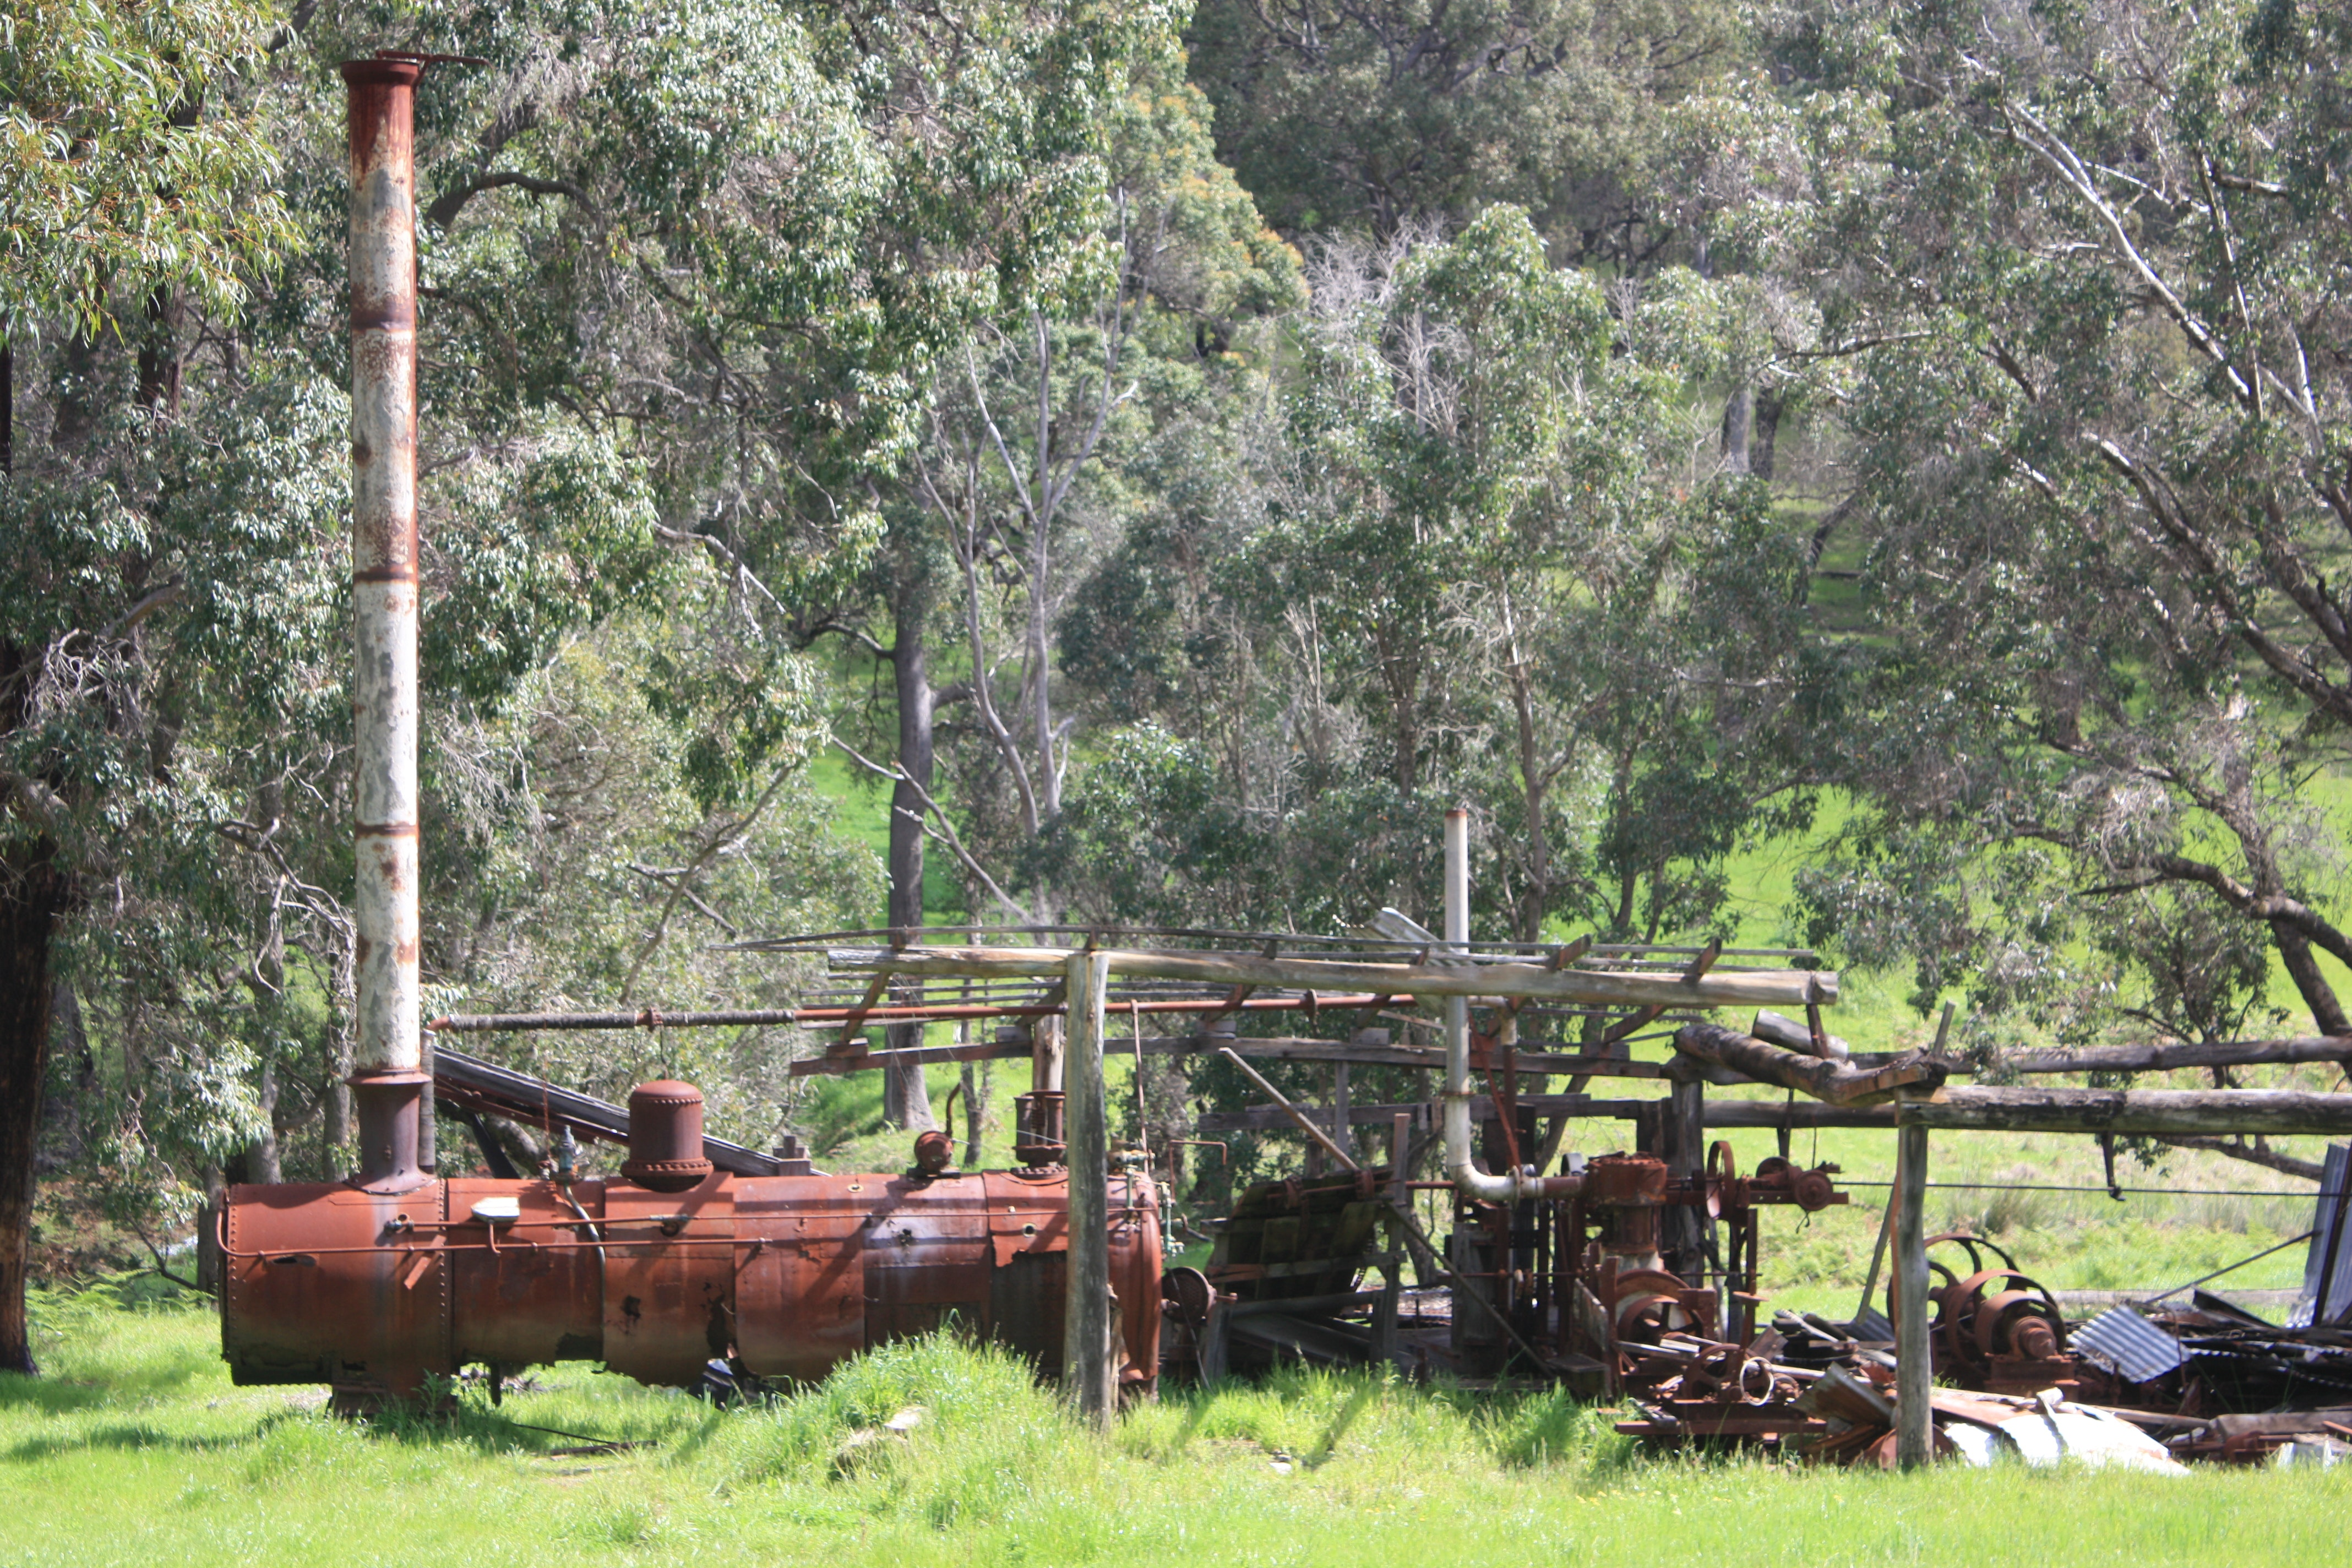 Old steam powered mill near Kirup